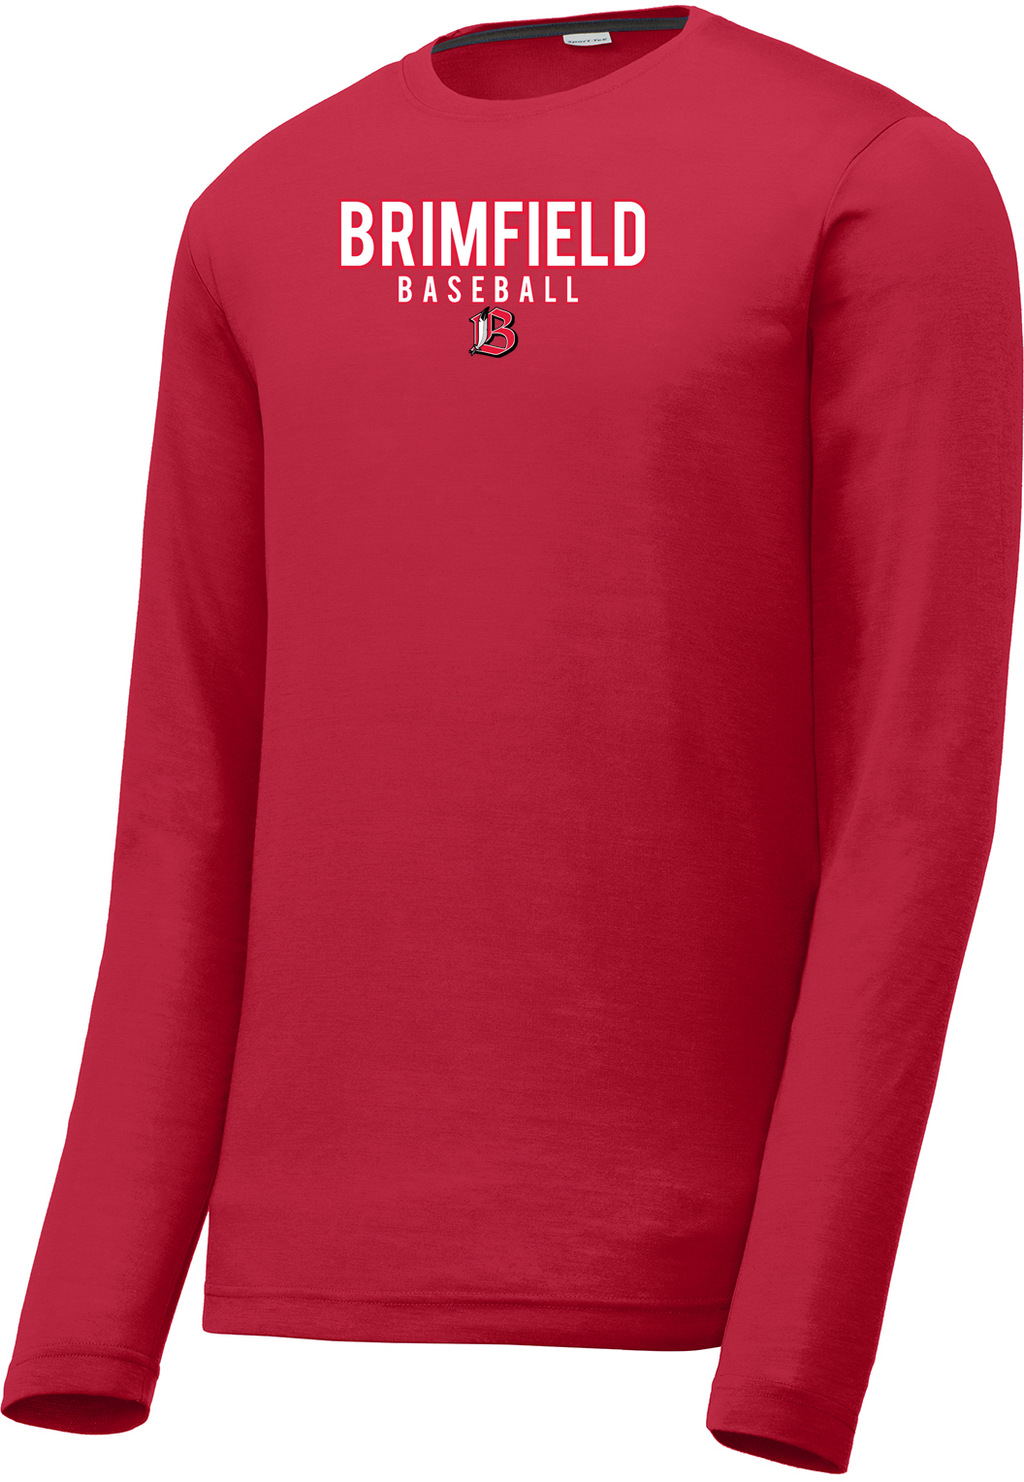 Brimfield Baseball Long Sleeve CottonTouch Performance Shirt